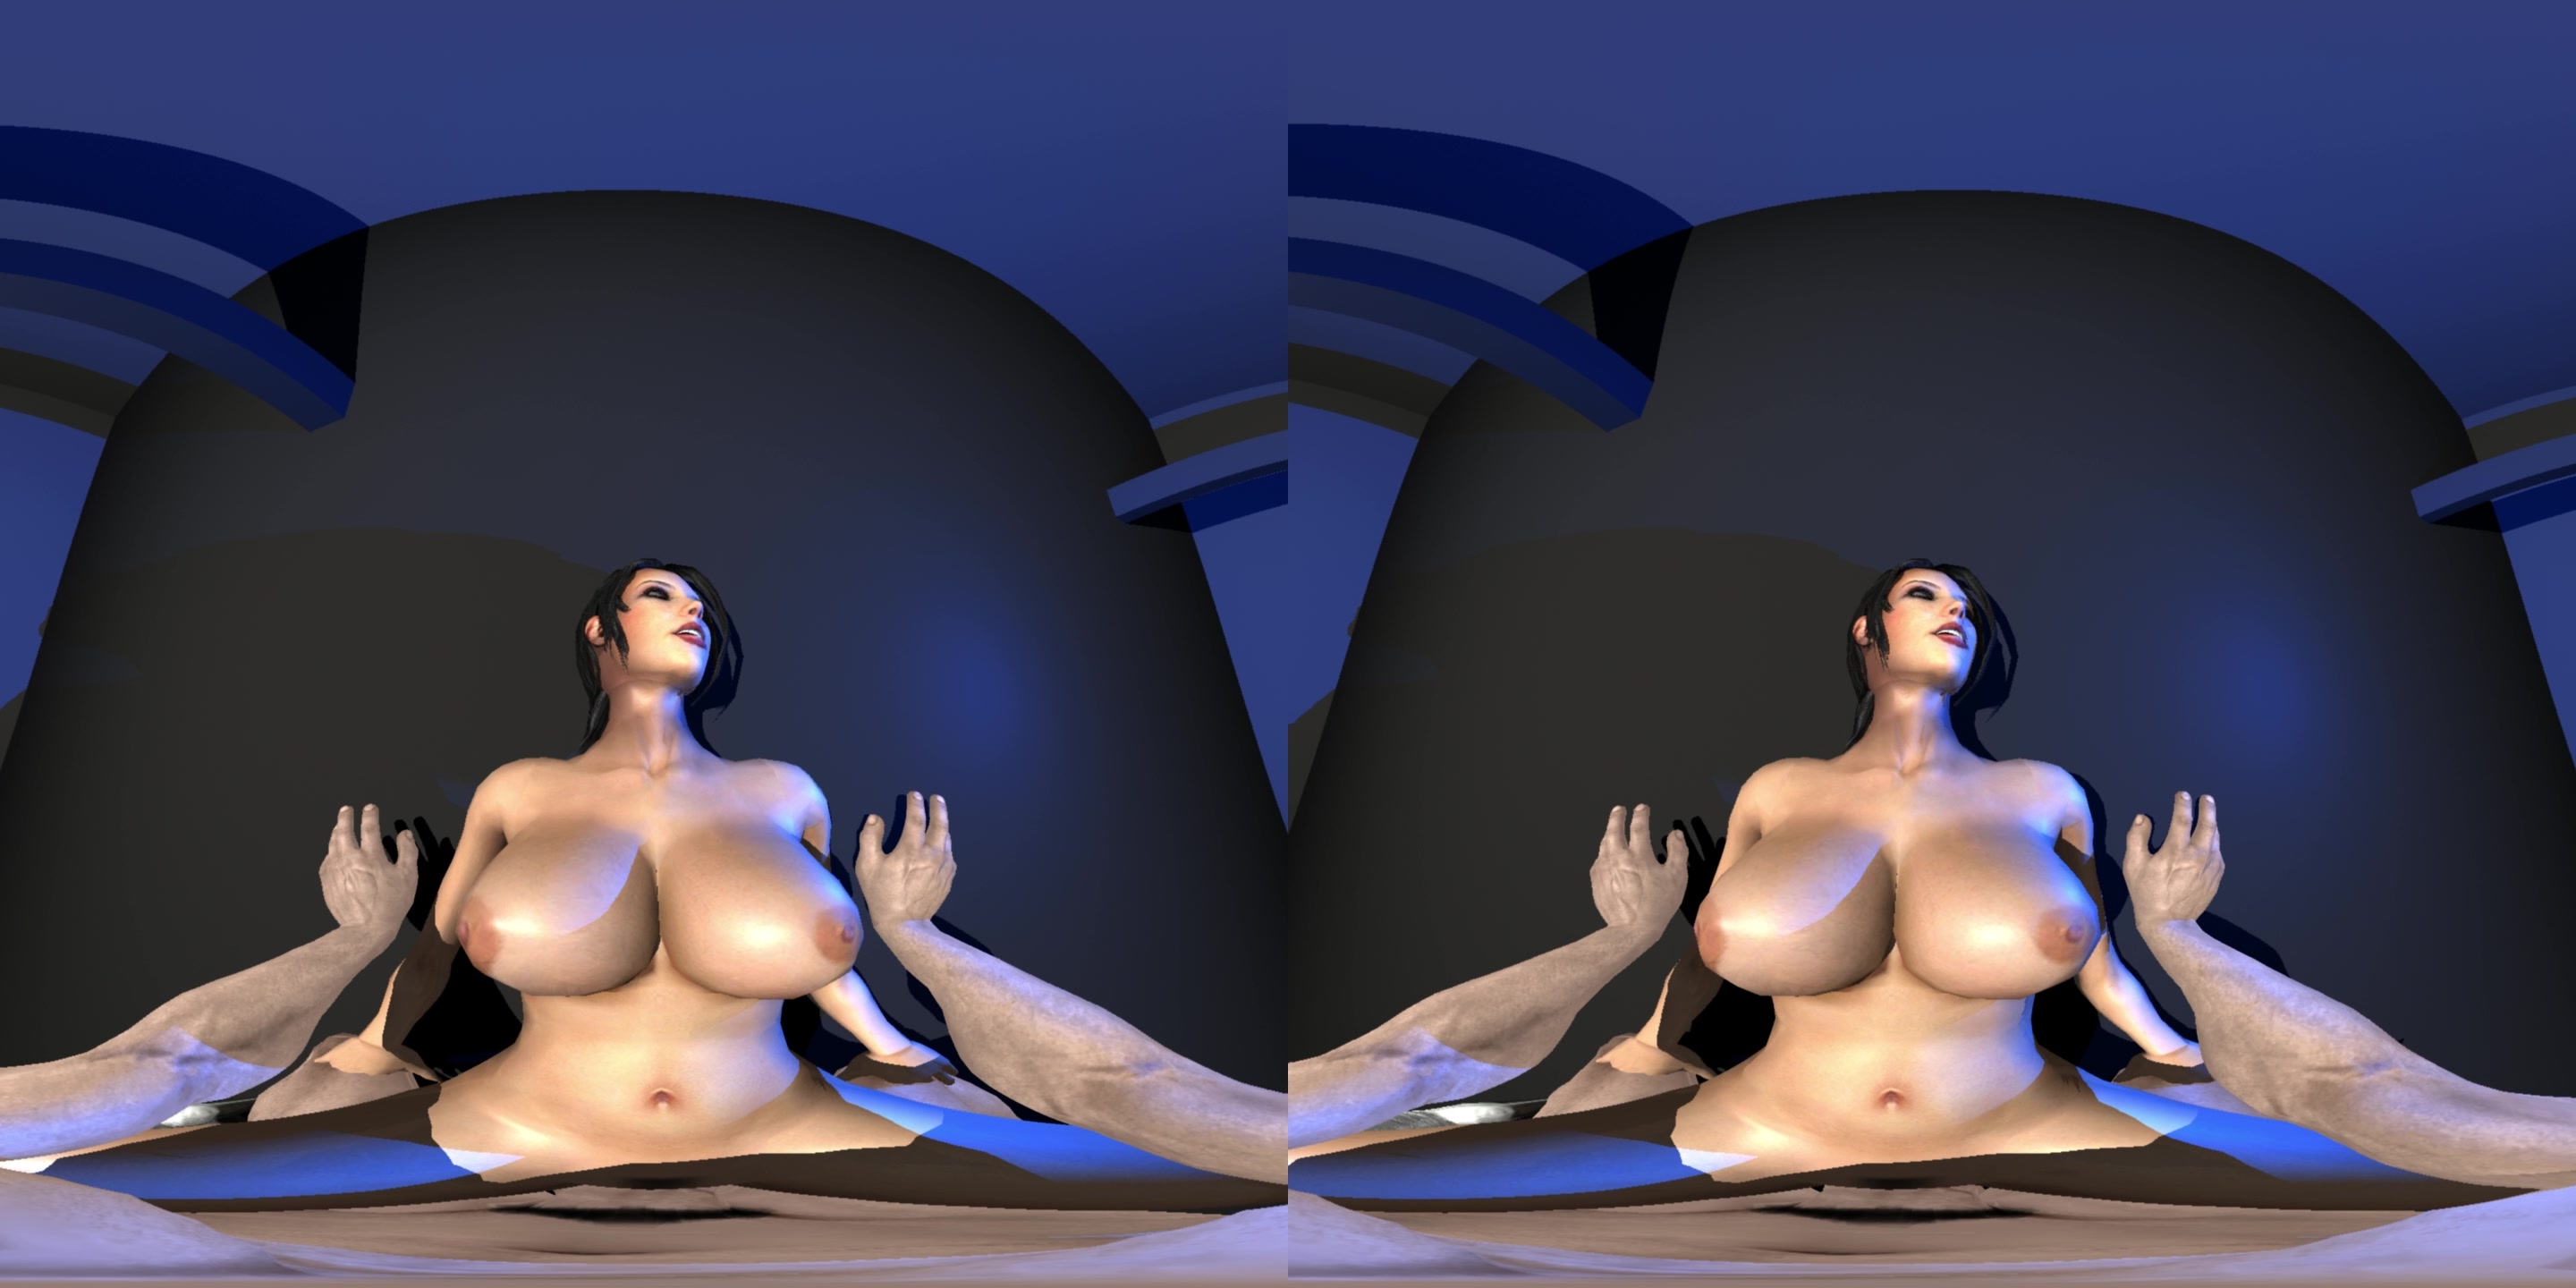 Fatality 3d animated porn video fucked tubes